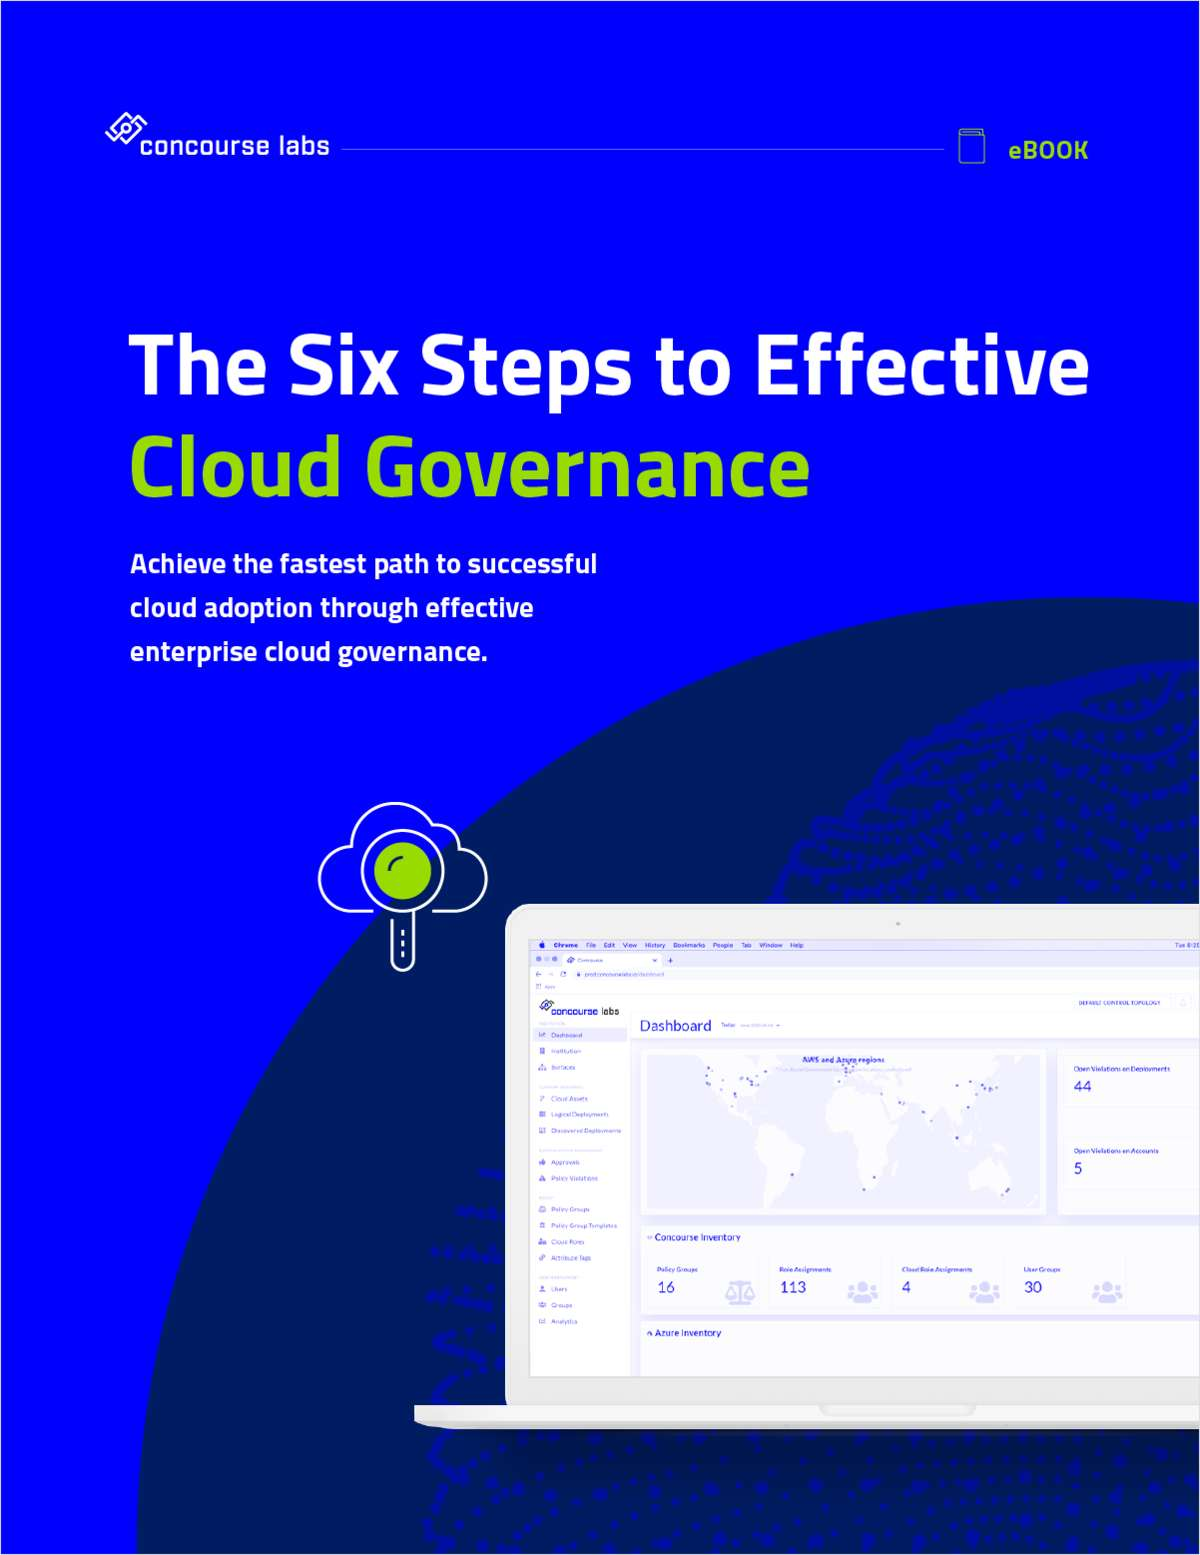 The Six Steps to Effective Cloud Governance